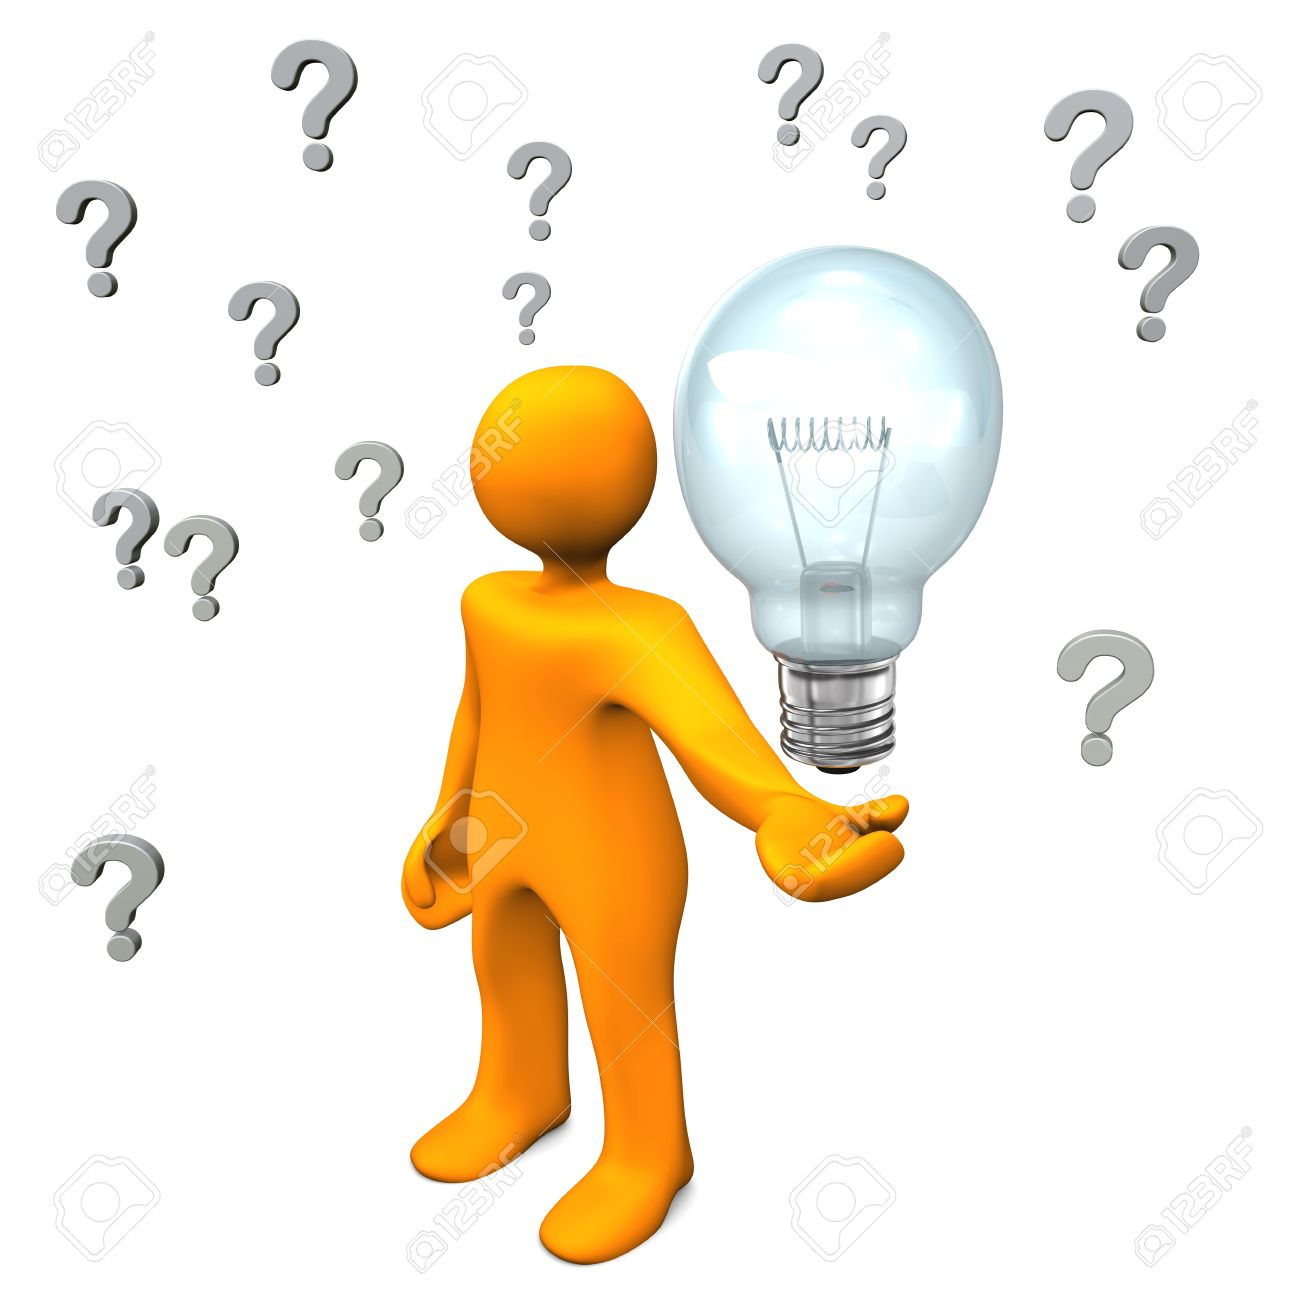 Orange cartoon character with question marks and big bulb. Stock Photo - 18842857